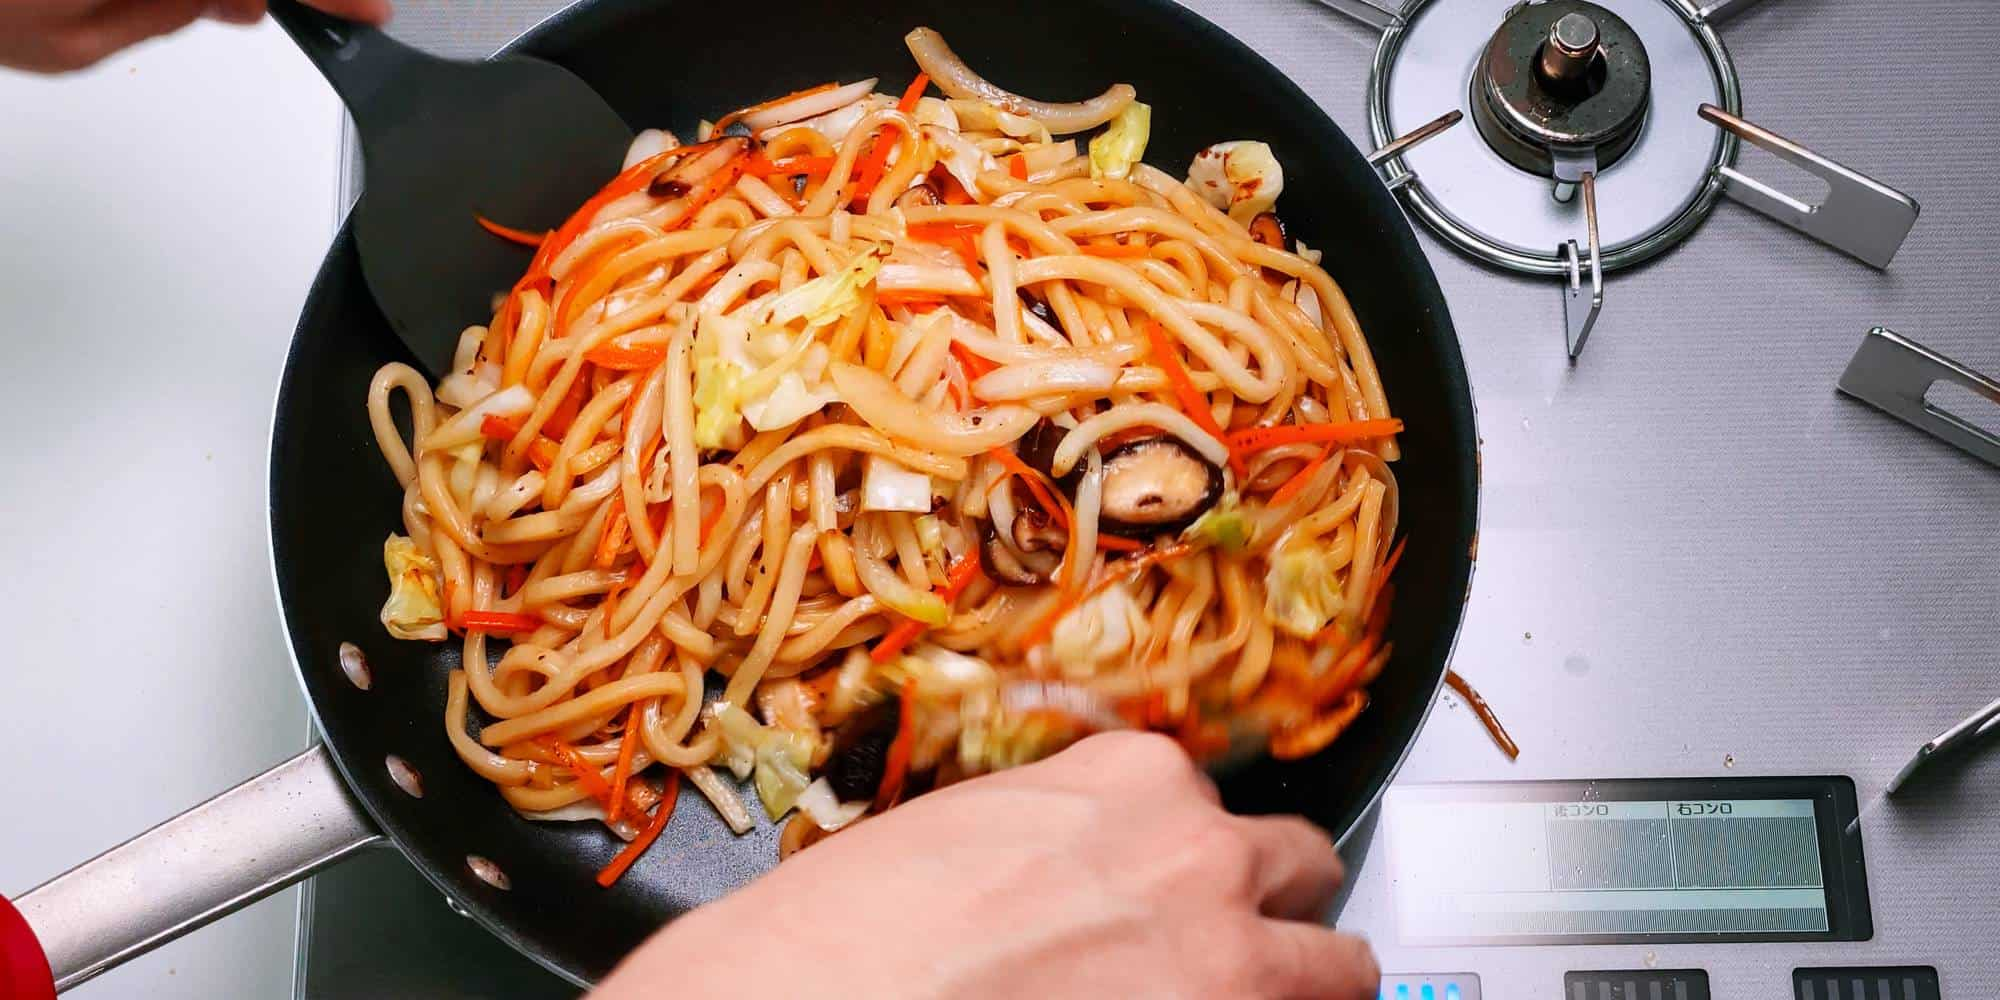 Tossing yaki udon with sauce.